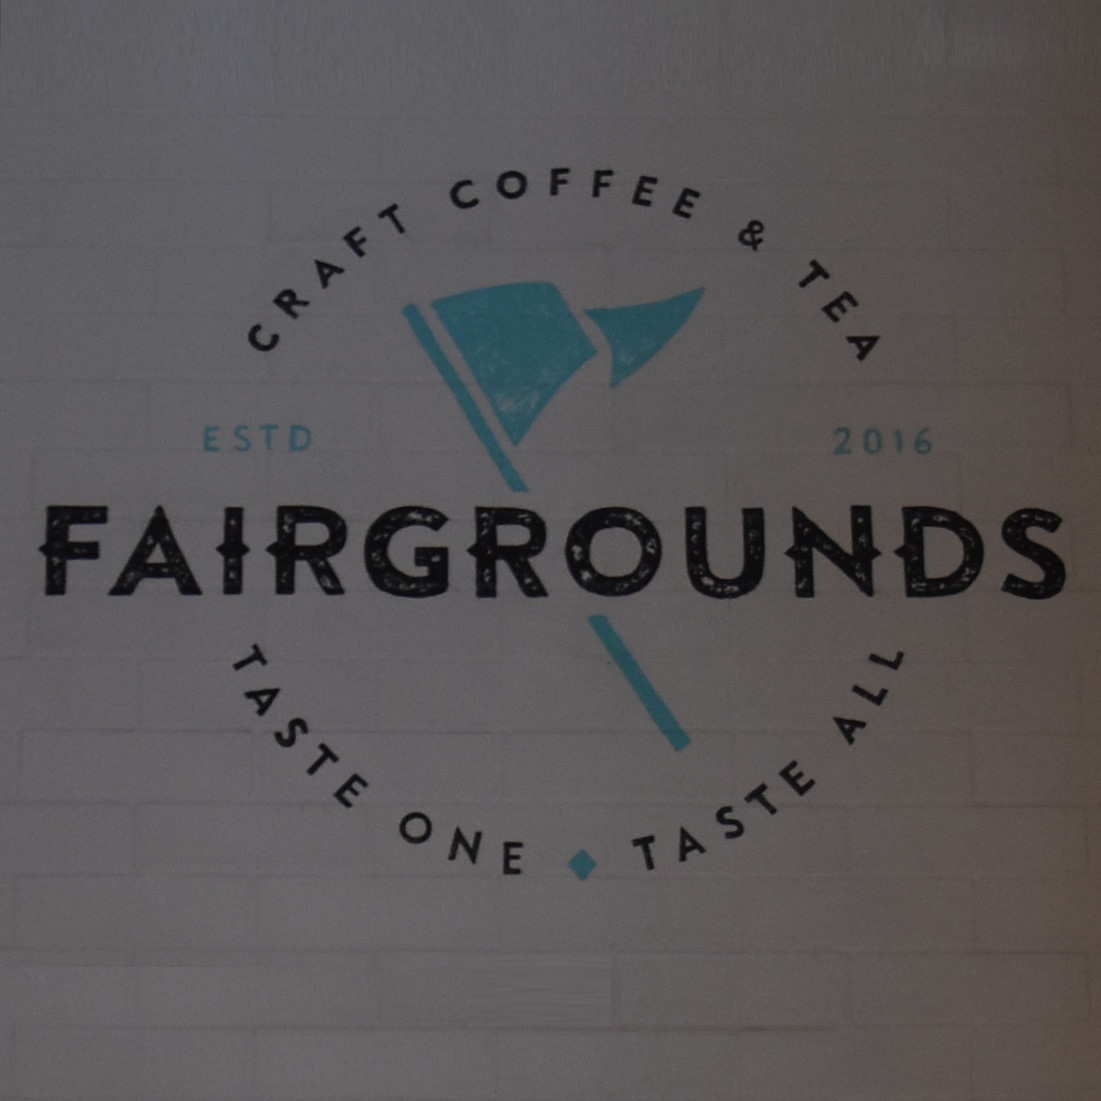 Fairgrounds, Craft Coffee & Tea | Taste One, Taste All, written on the back wall at the Bucktown location in Chicago.